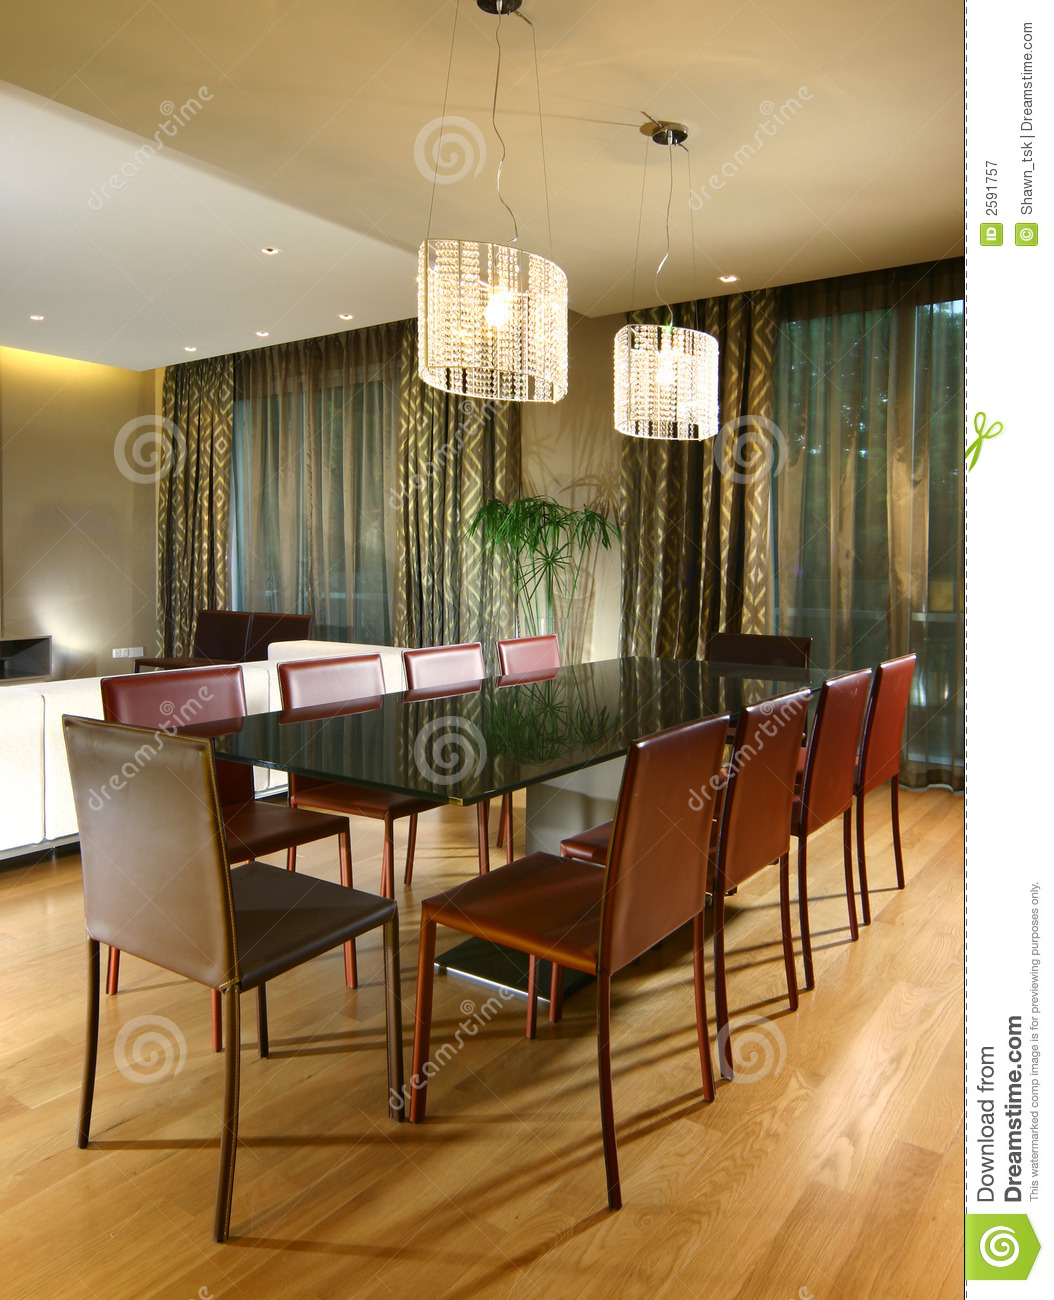 interior design dining area royalty free stock